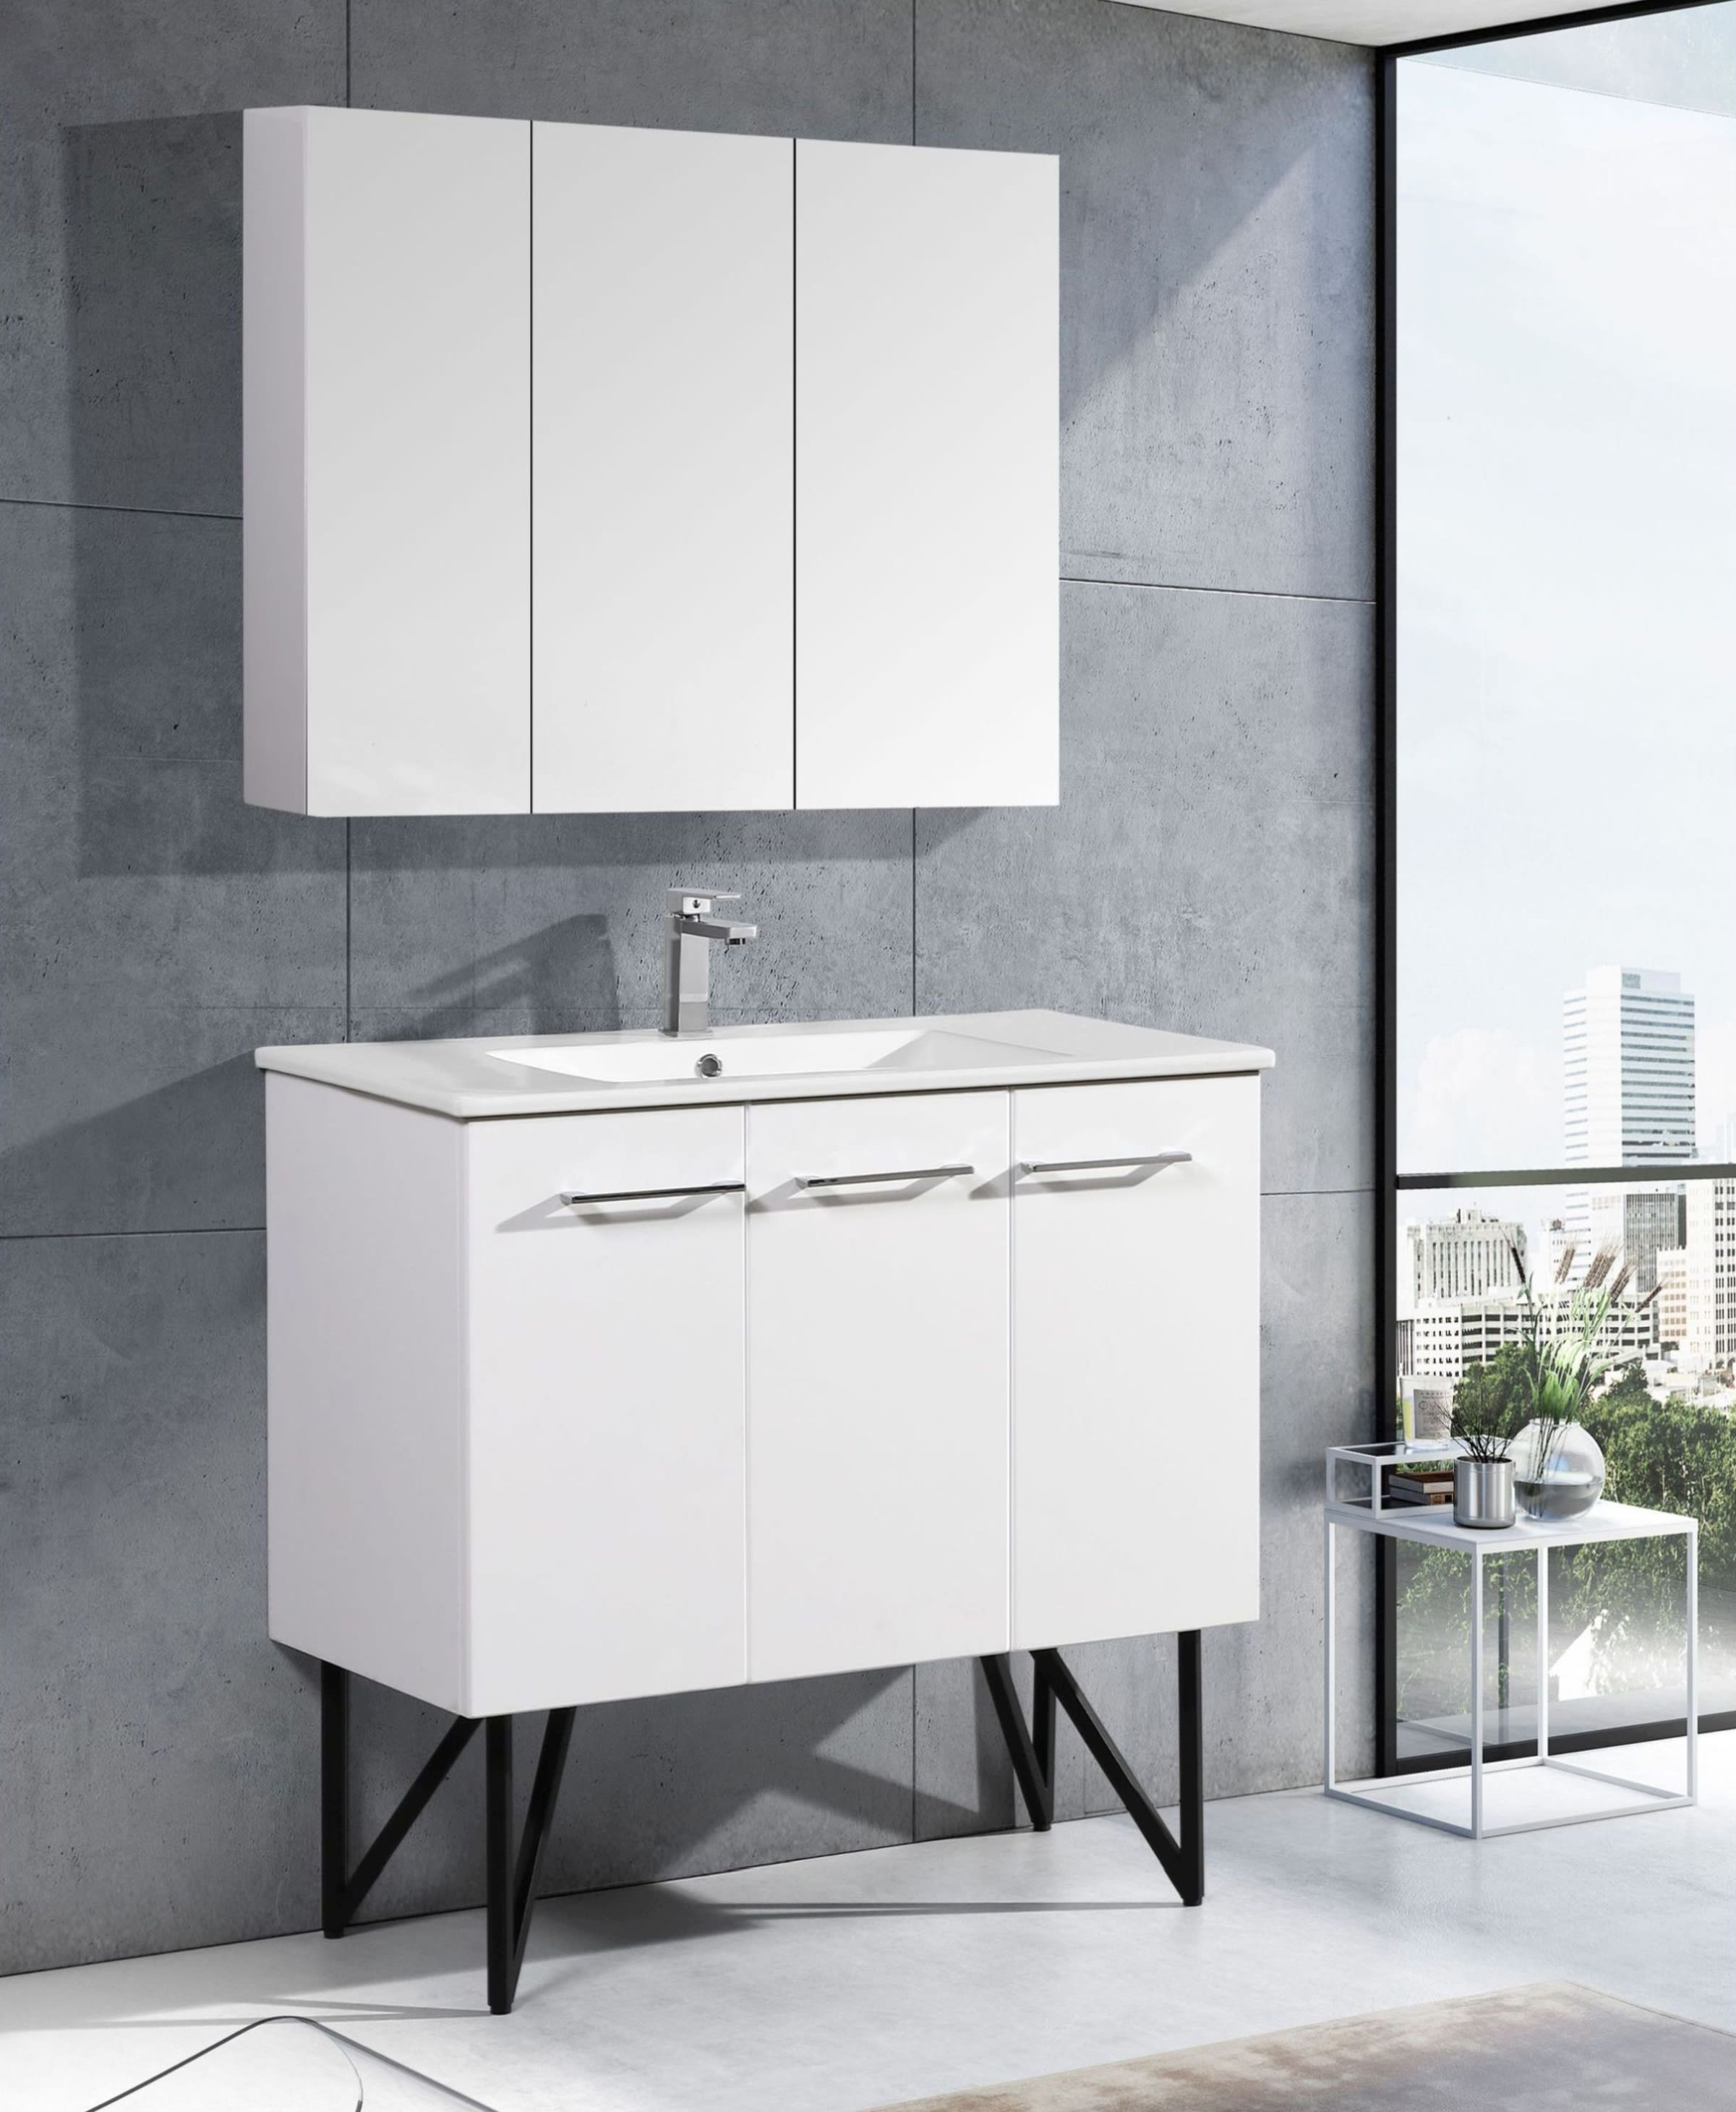 Swiss Madison Sm Bv213 Glossy White Annecy 36 Free Standing Wall Mounted Floating Single Basin Vanity Set With Mdf Cabinet And Ceramic Vanity Top Faucet Com